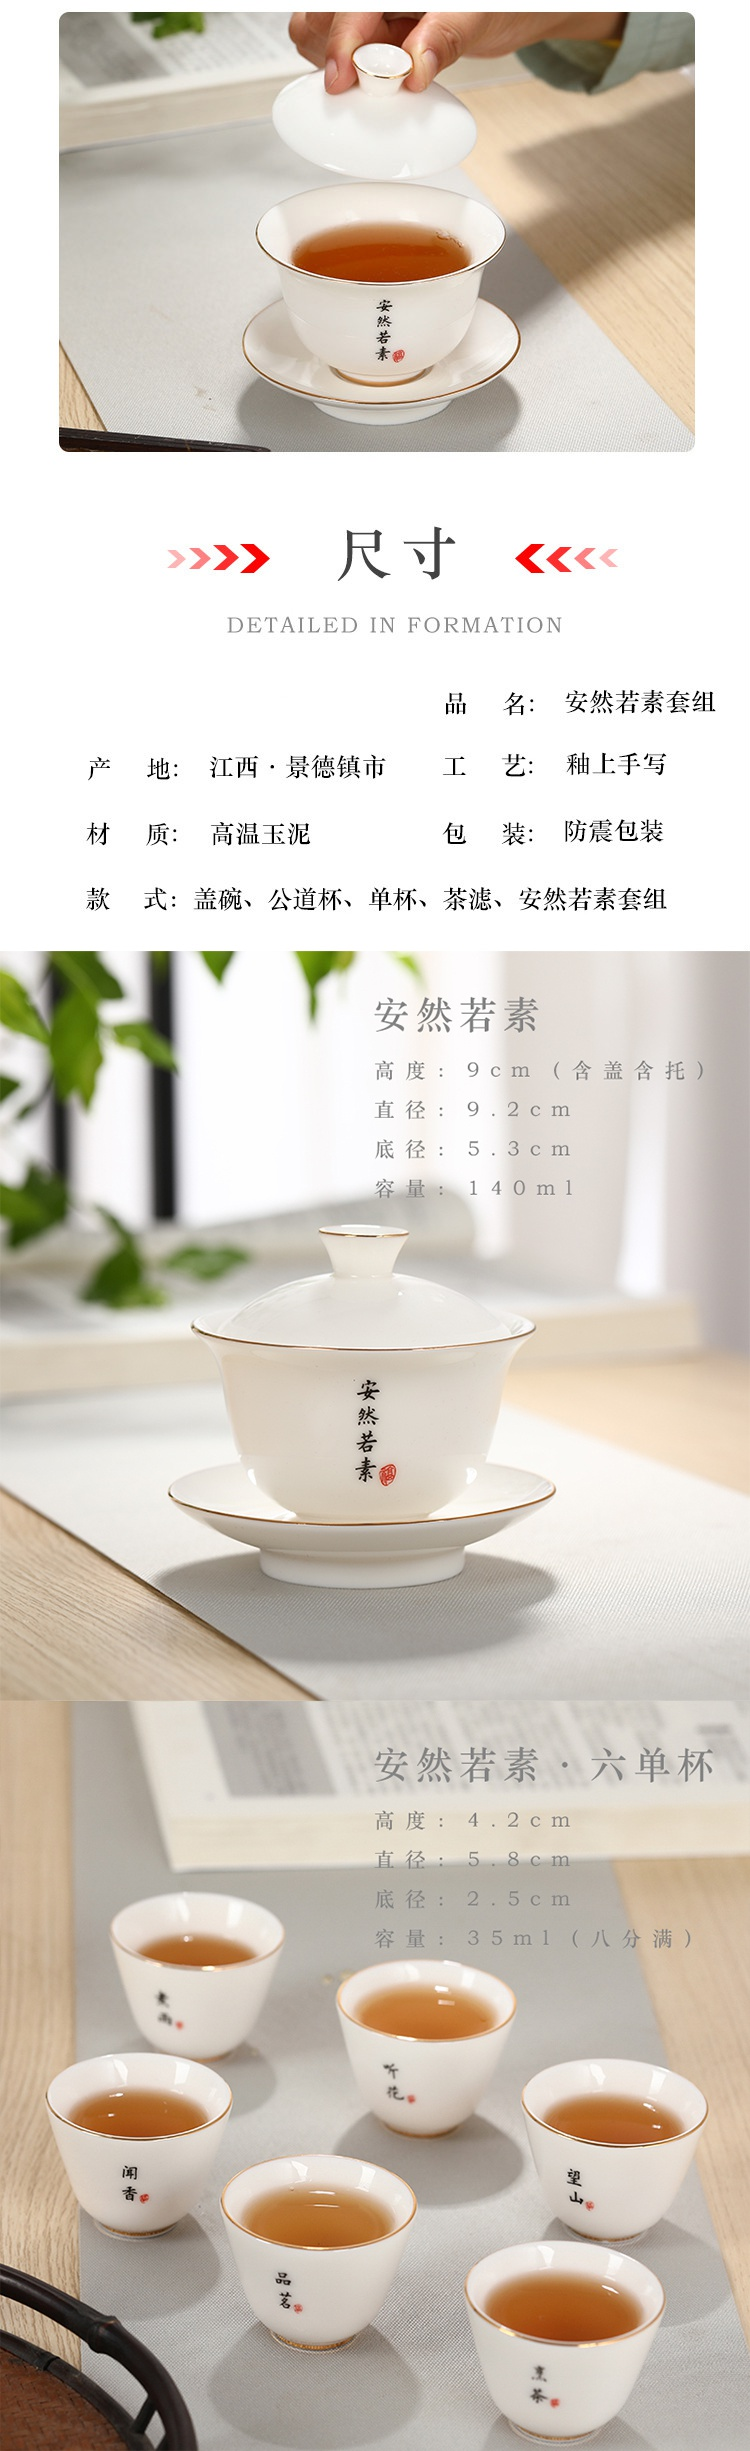 The Poly real jingdezhen checking scene sweet white porcelain up phnom penh white jade three tureen suit not hot tea cups